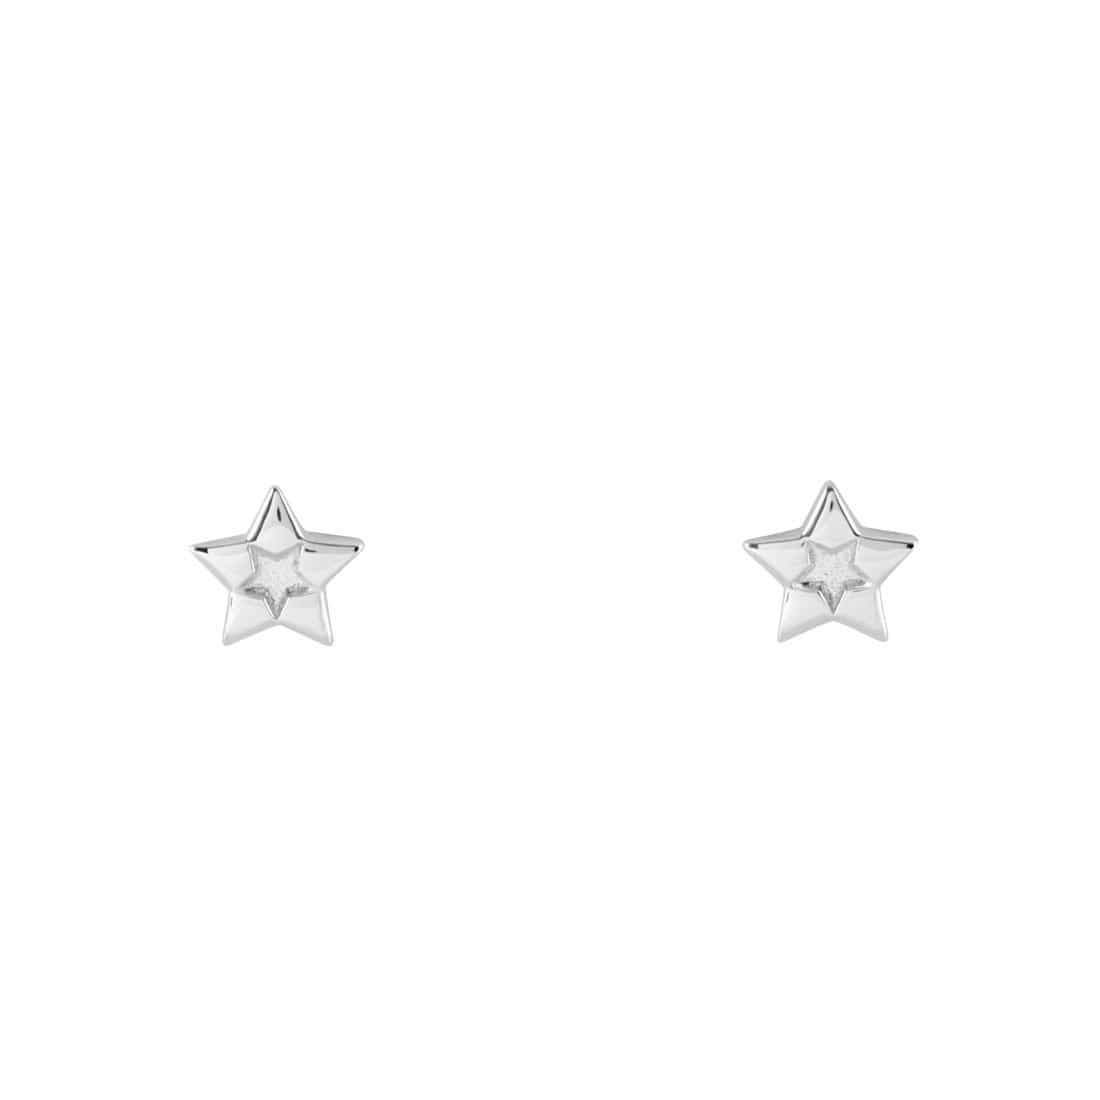 Midsummer Star Earrings Western Star Studs